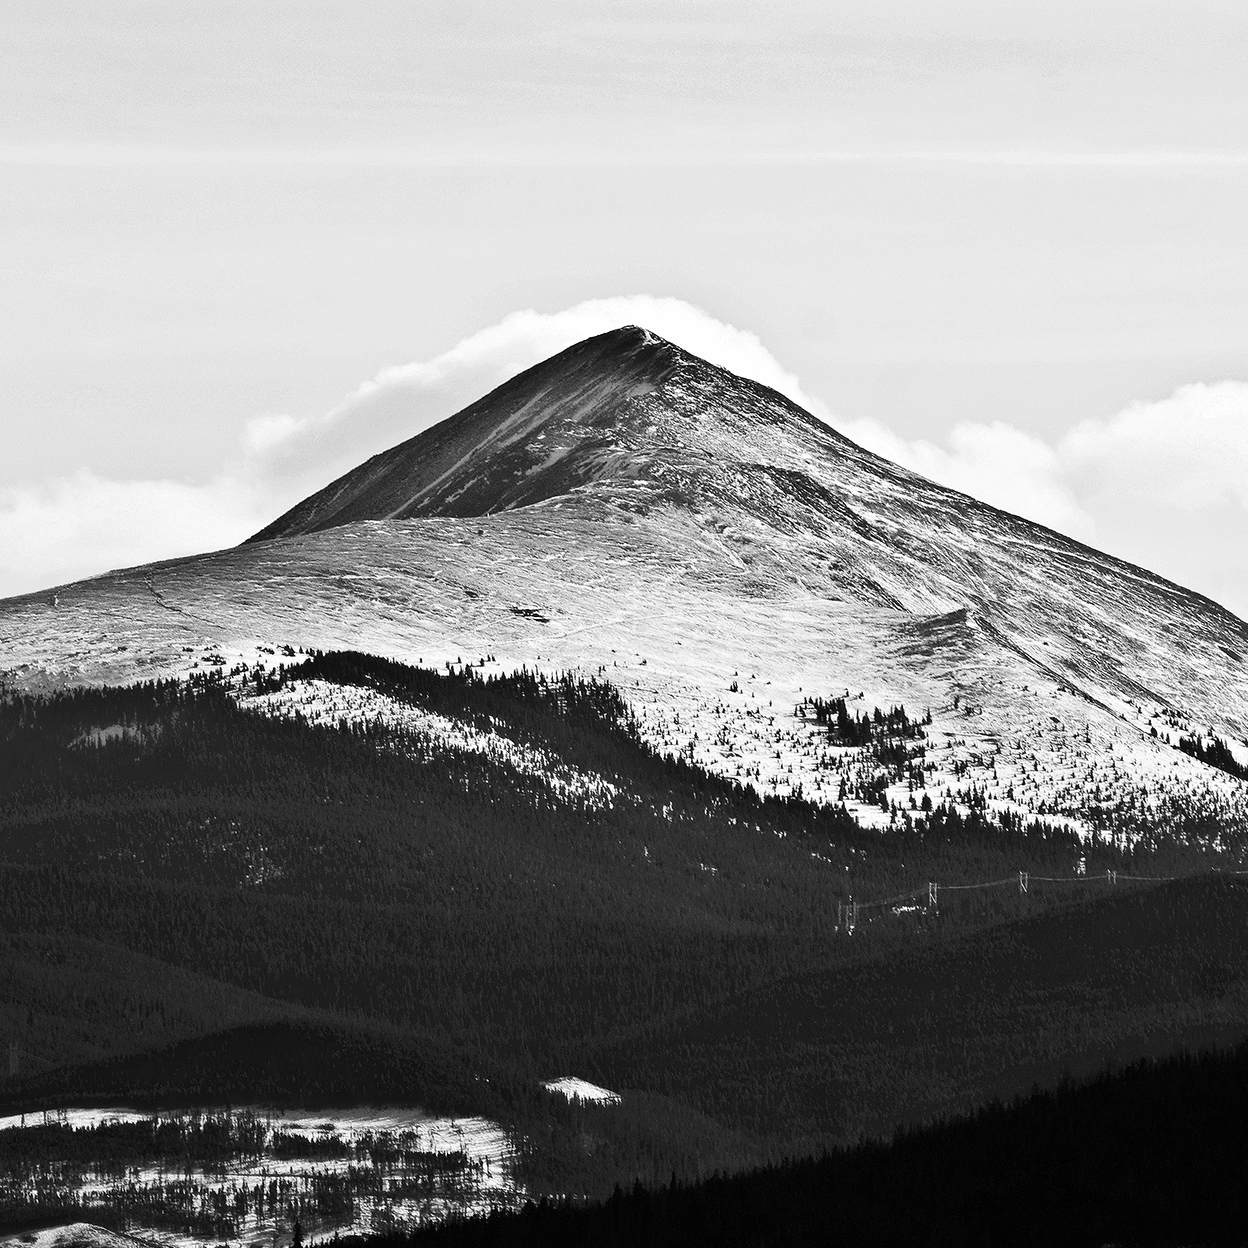 (c) 2017 Right Half Media - The Rocky Mountains Photograph #1